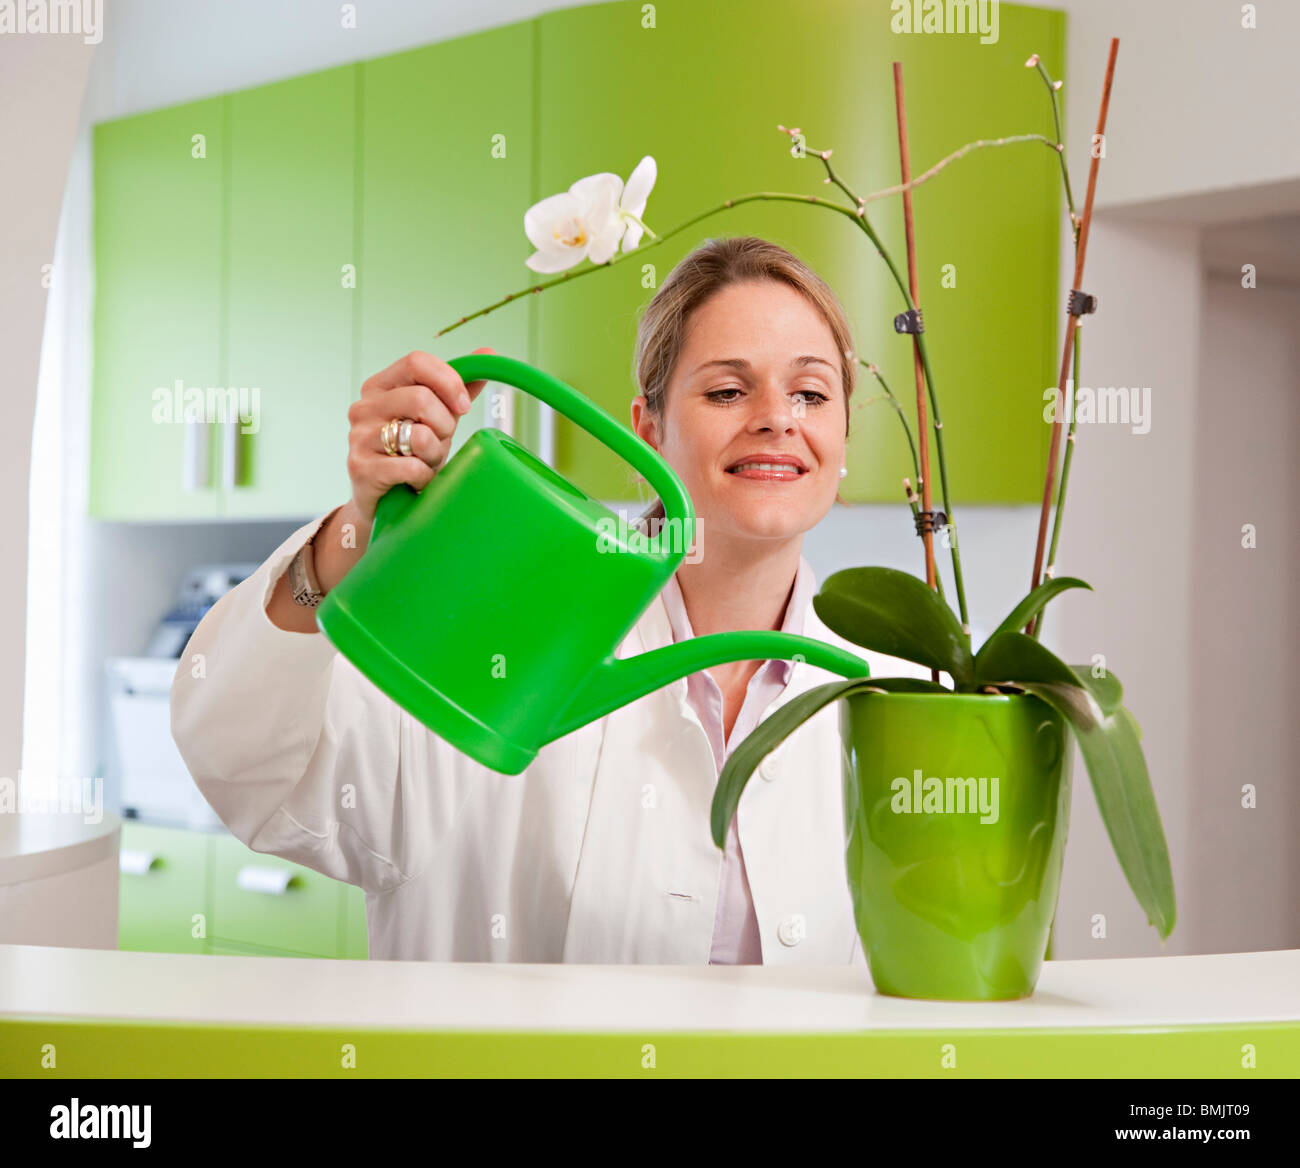 Doctor watering plant - Stock Image